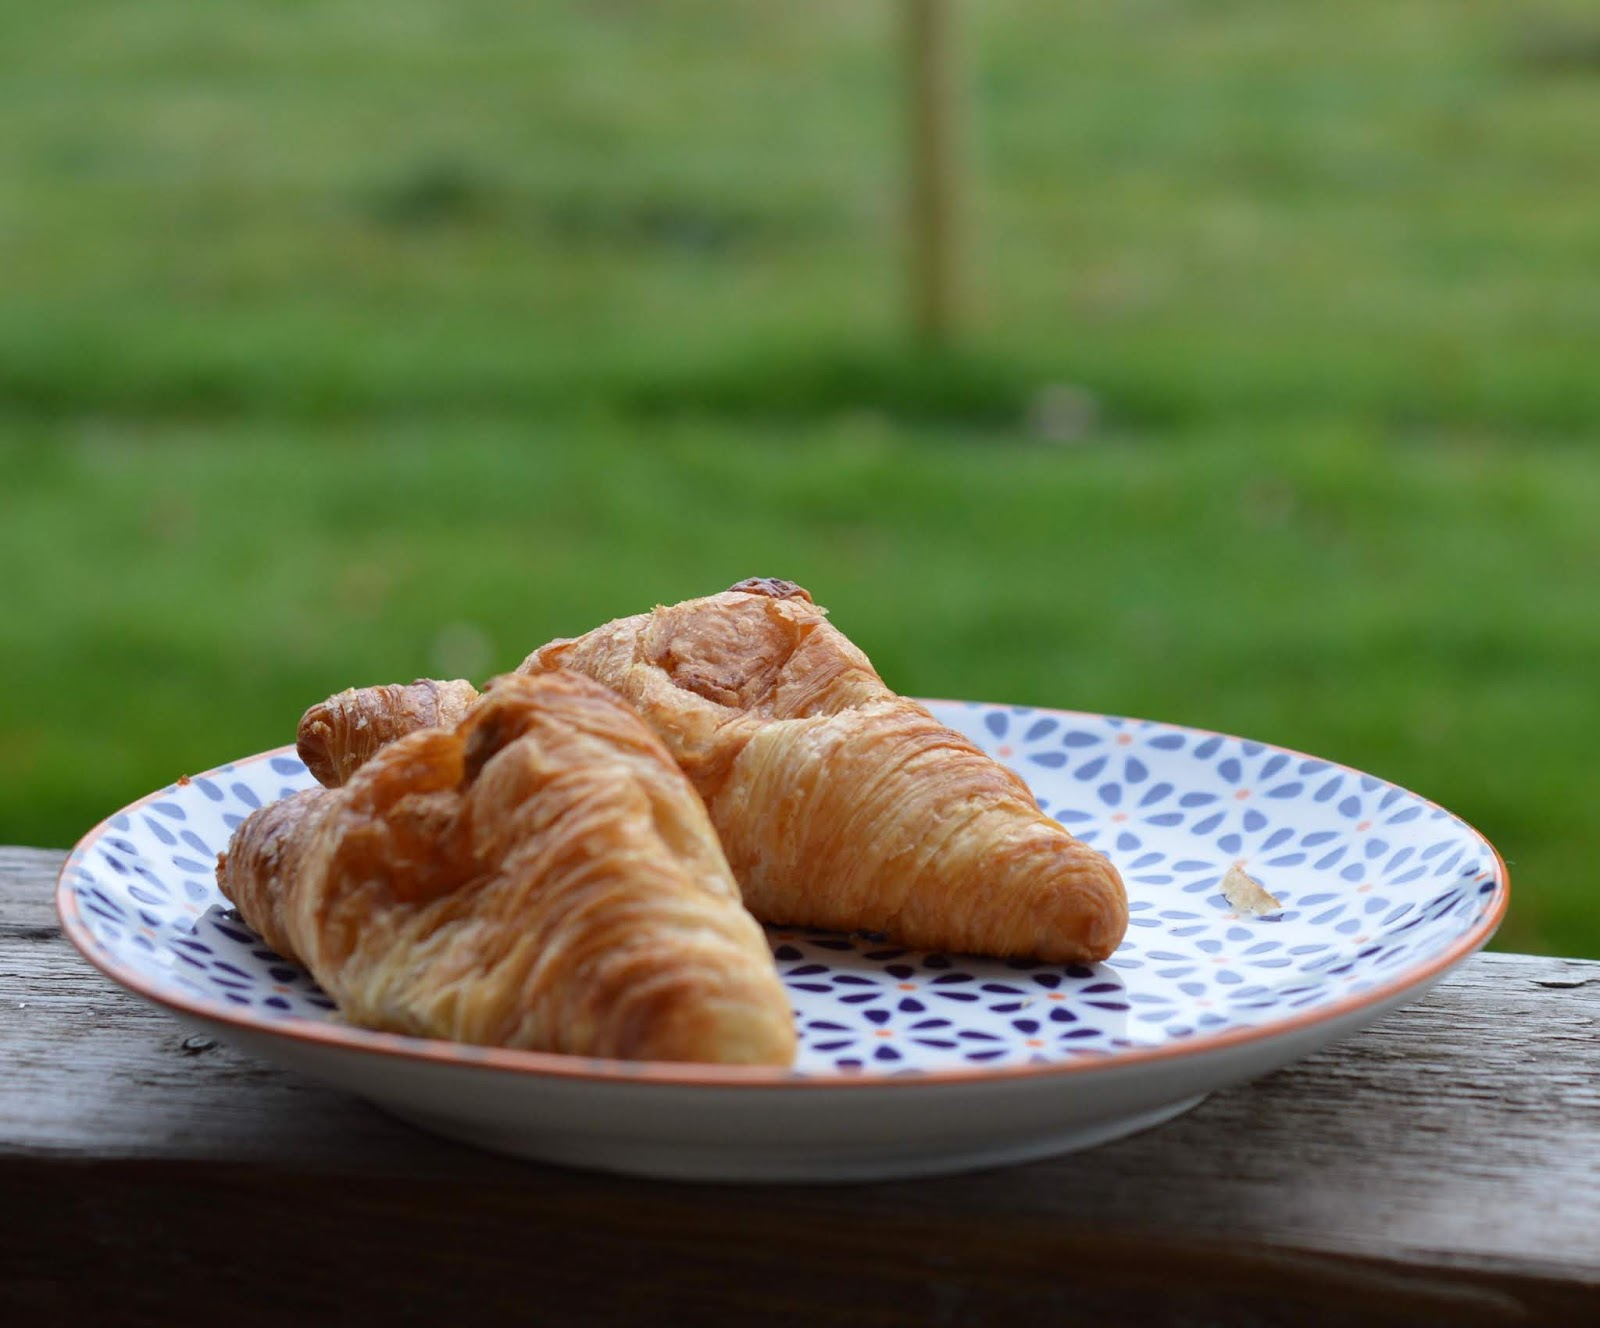 Experience Northumberland's Dark Skies with a Stay at Hesleyside Huts  - fresh croissants